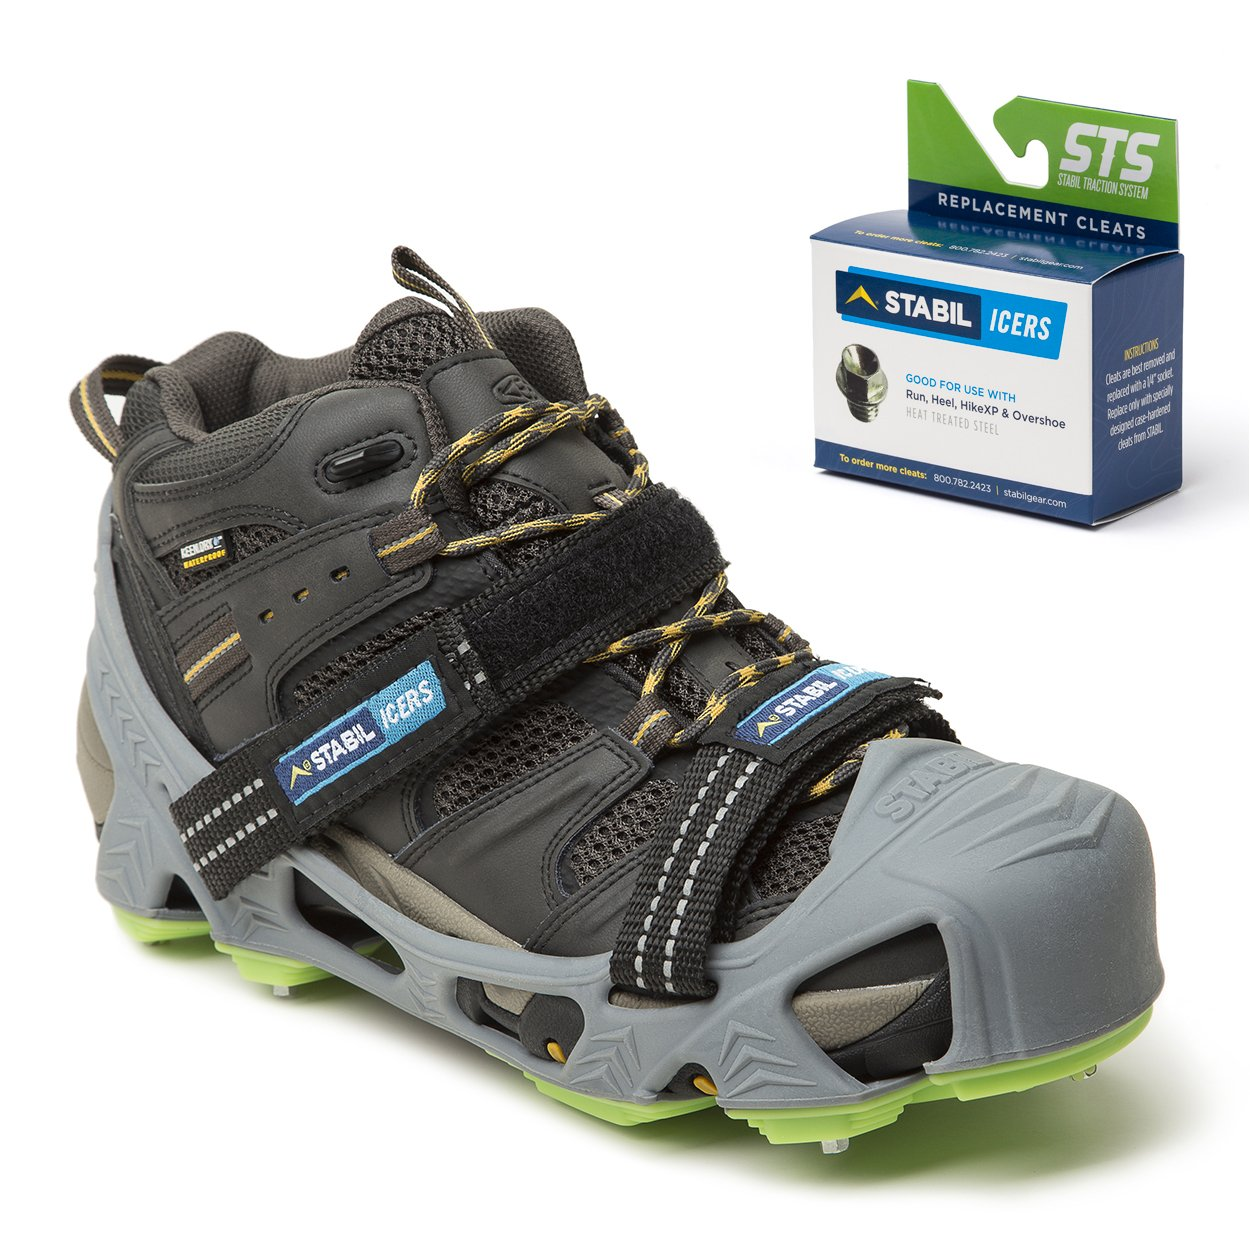 STABILicers HIKE XP, Made in USA, High Performance Snow and Ice Traction Cleats for Shoes and Boots, 25 Replacement Cleats Included, Gray/Green, Size XL